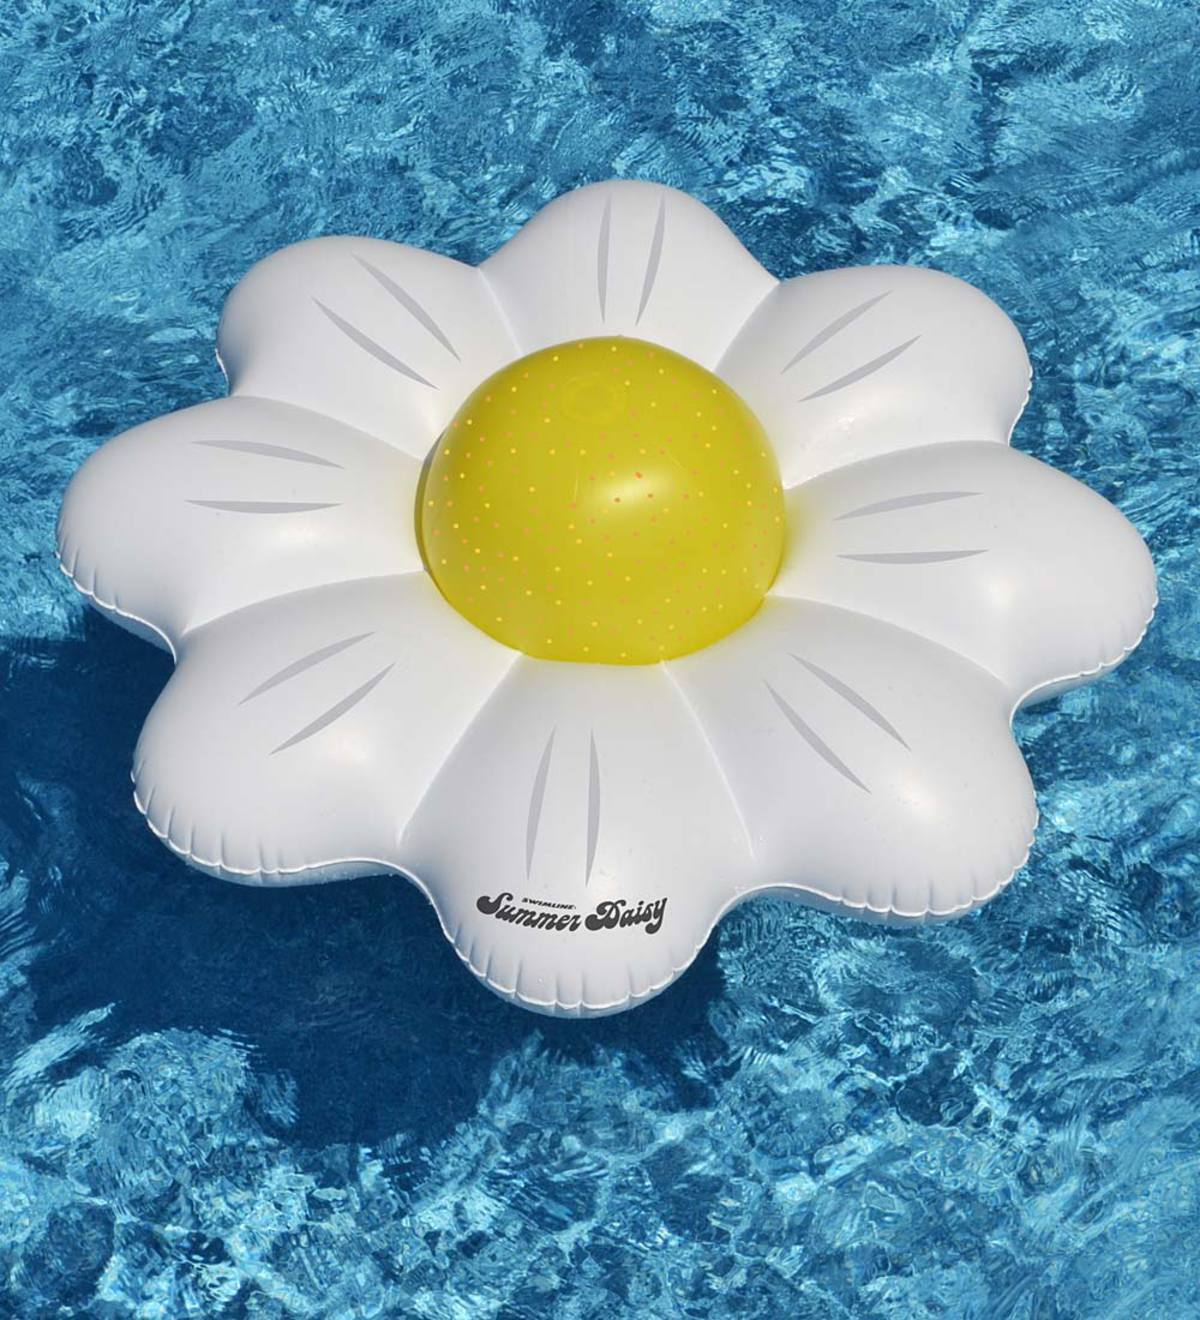 Summer Daisy Pool Float Combo